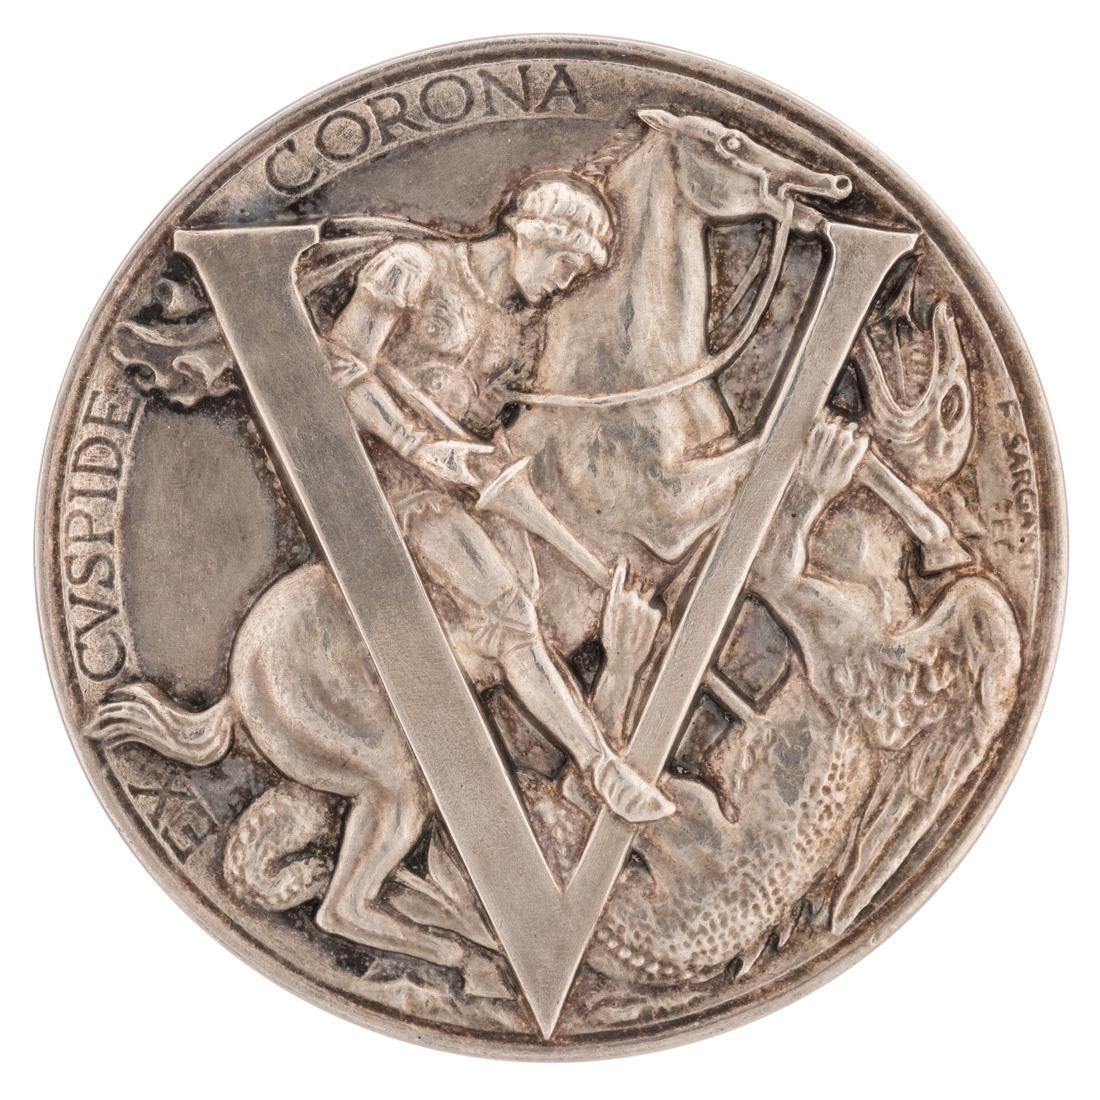 AN ENGLISH ST. GEORGE GREAT WAR VICTORY MEDAL BY